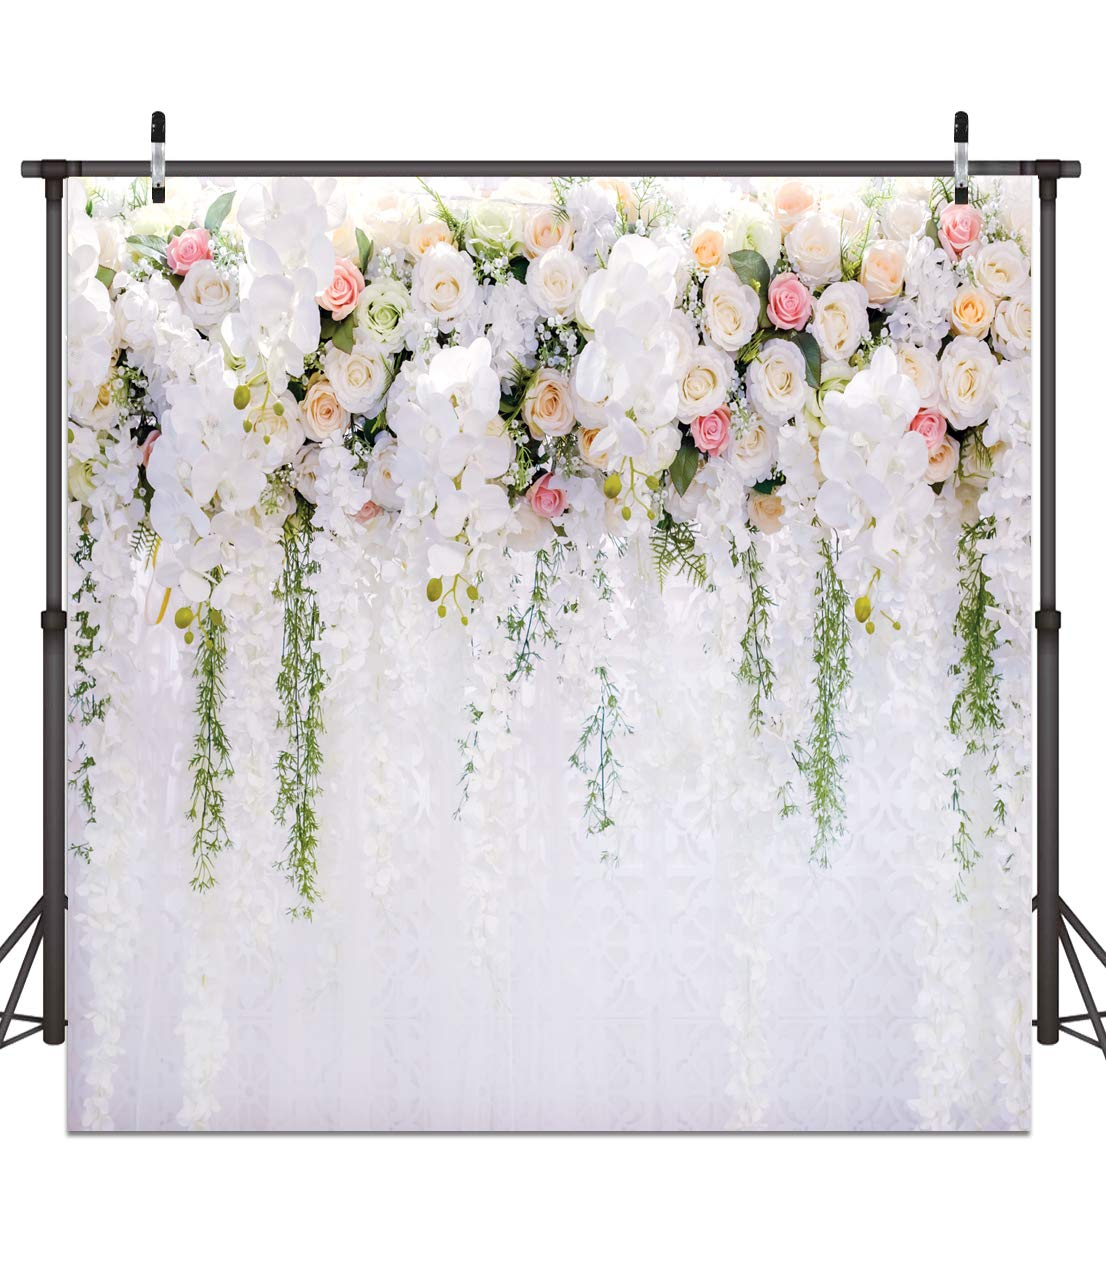 Dudaacvt 10x10FT White Flower Backdrop Curtain Floral 3D Flower Wedding Birthday Party Background Photo Backdrop Carnival Party Backdrop D073